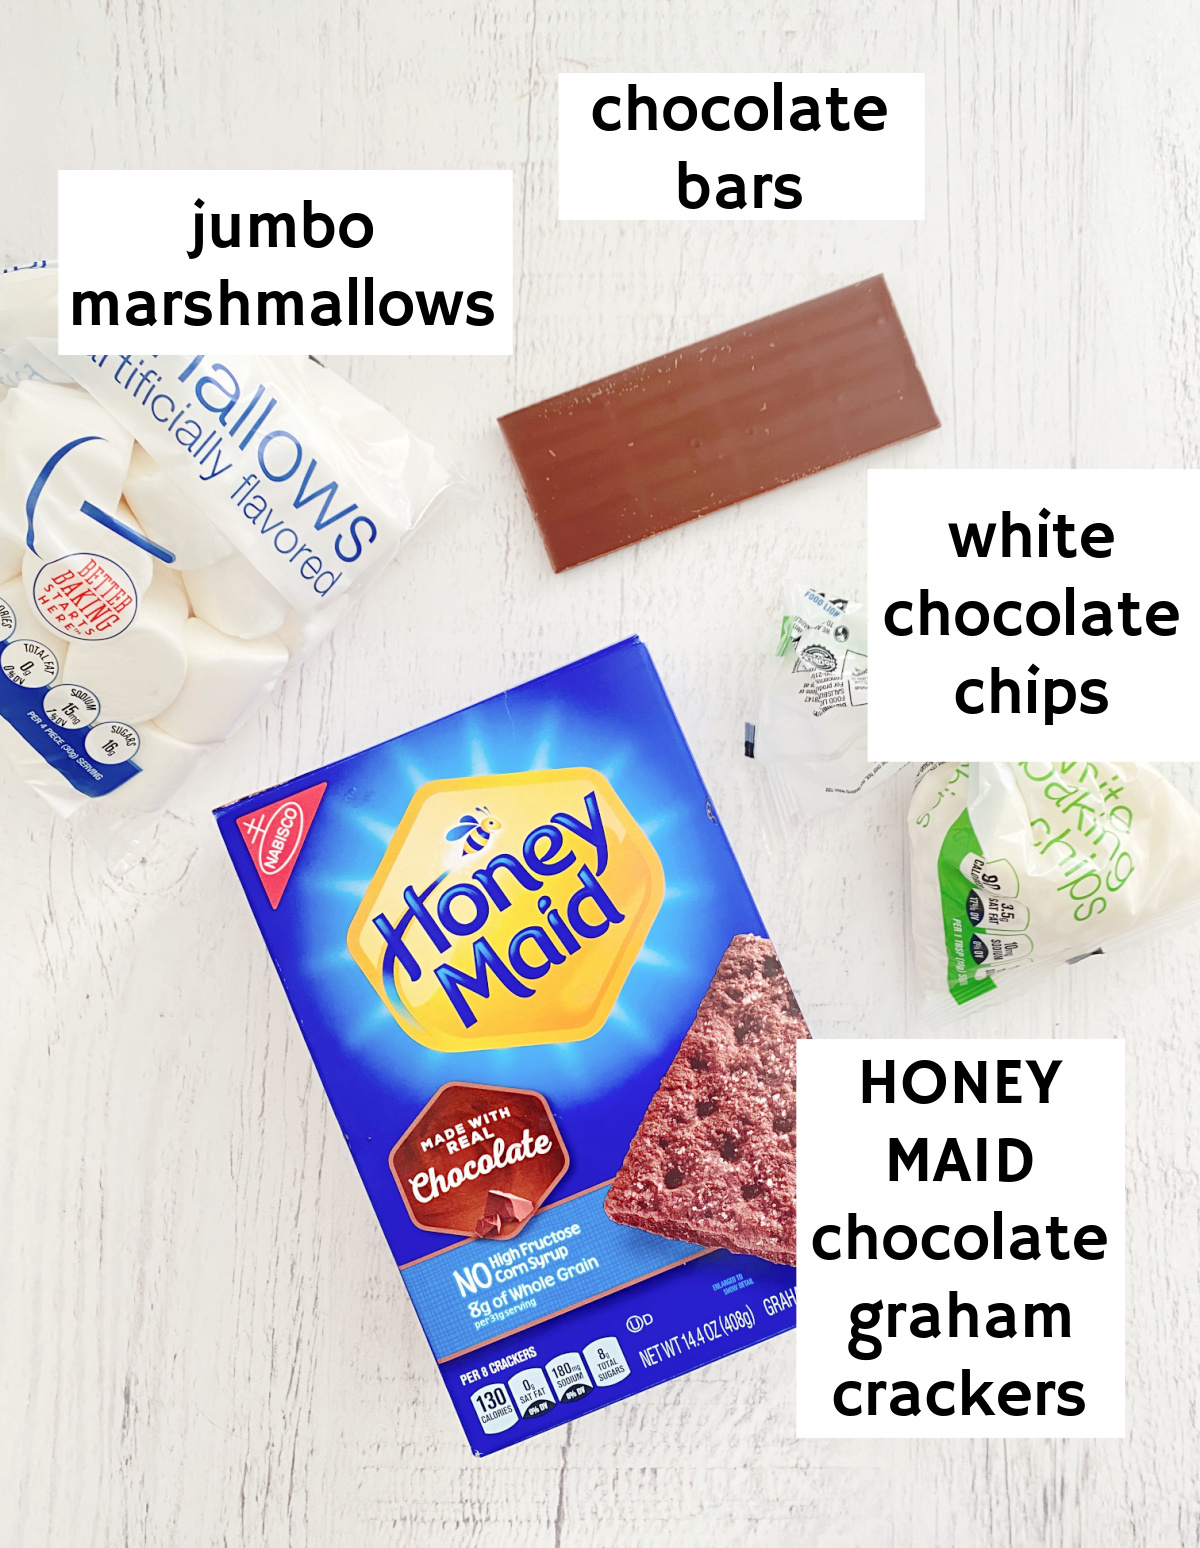 abeled ingredients for black and white s'mores